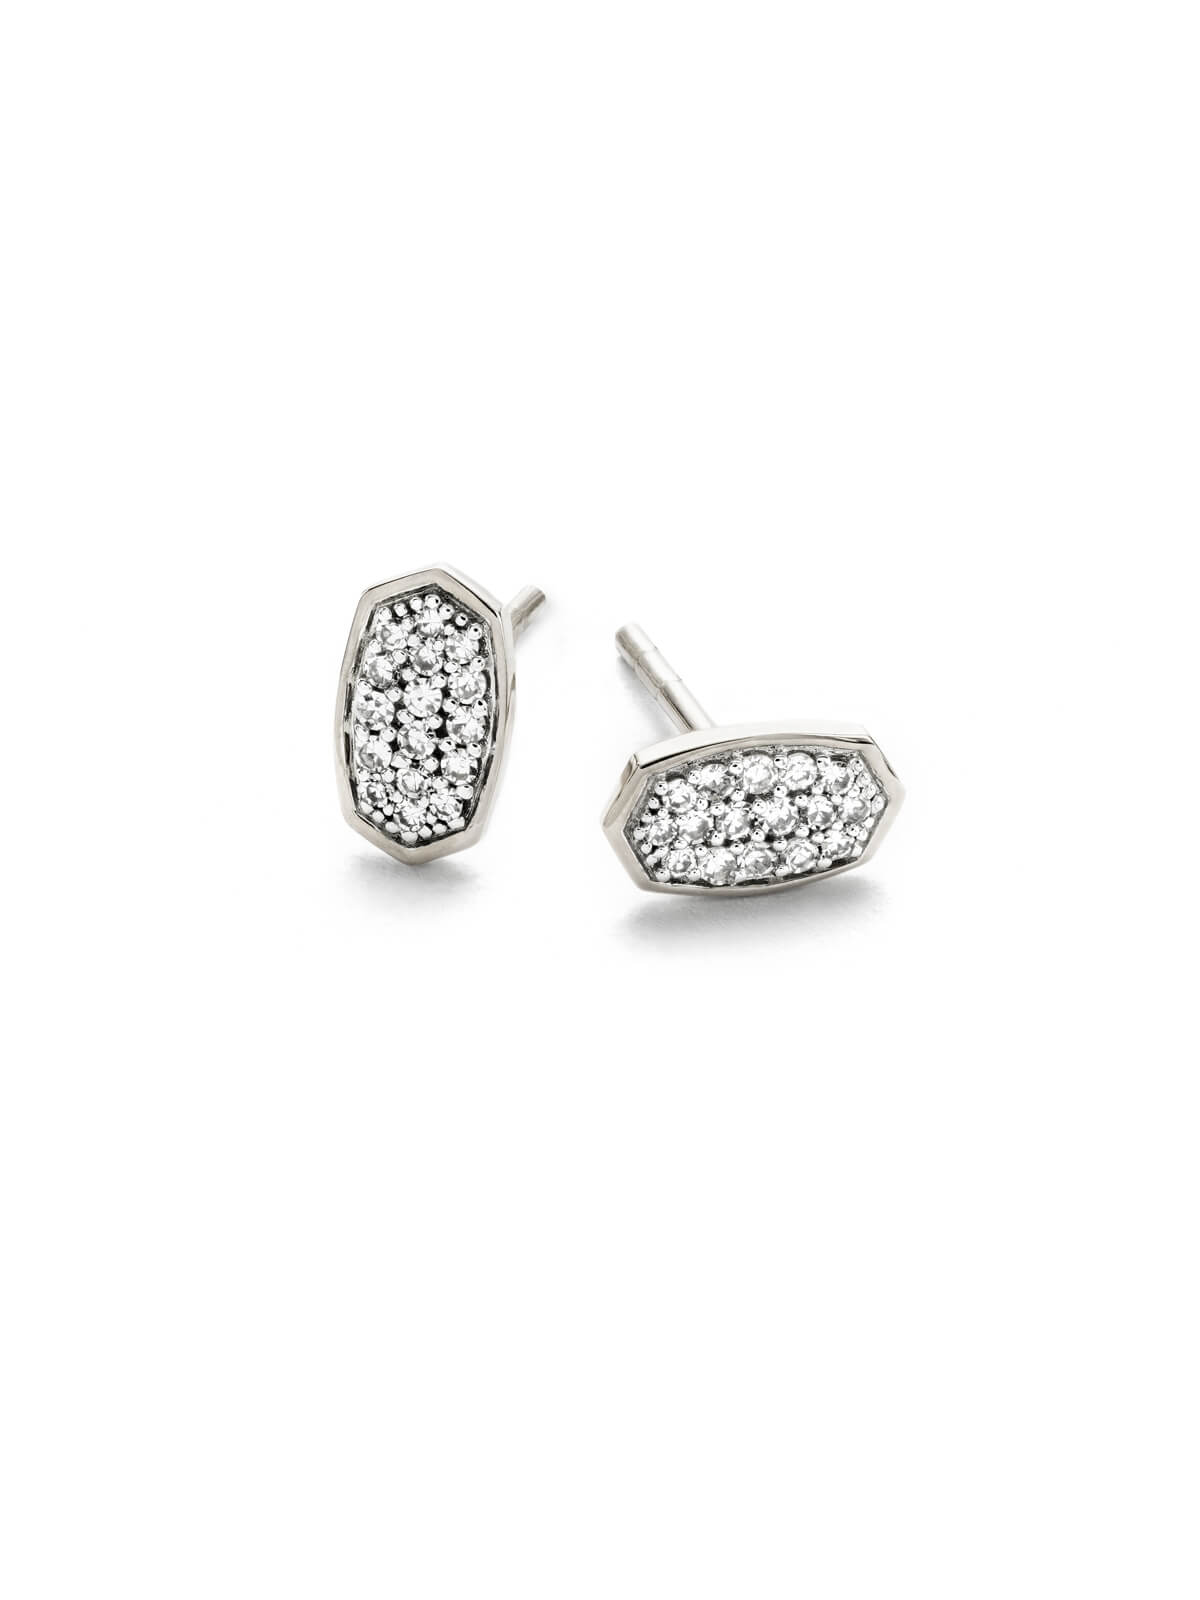 Gypsy Stud Earrings in White Diamond and 14k White Gold